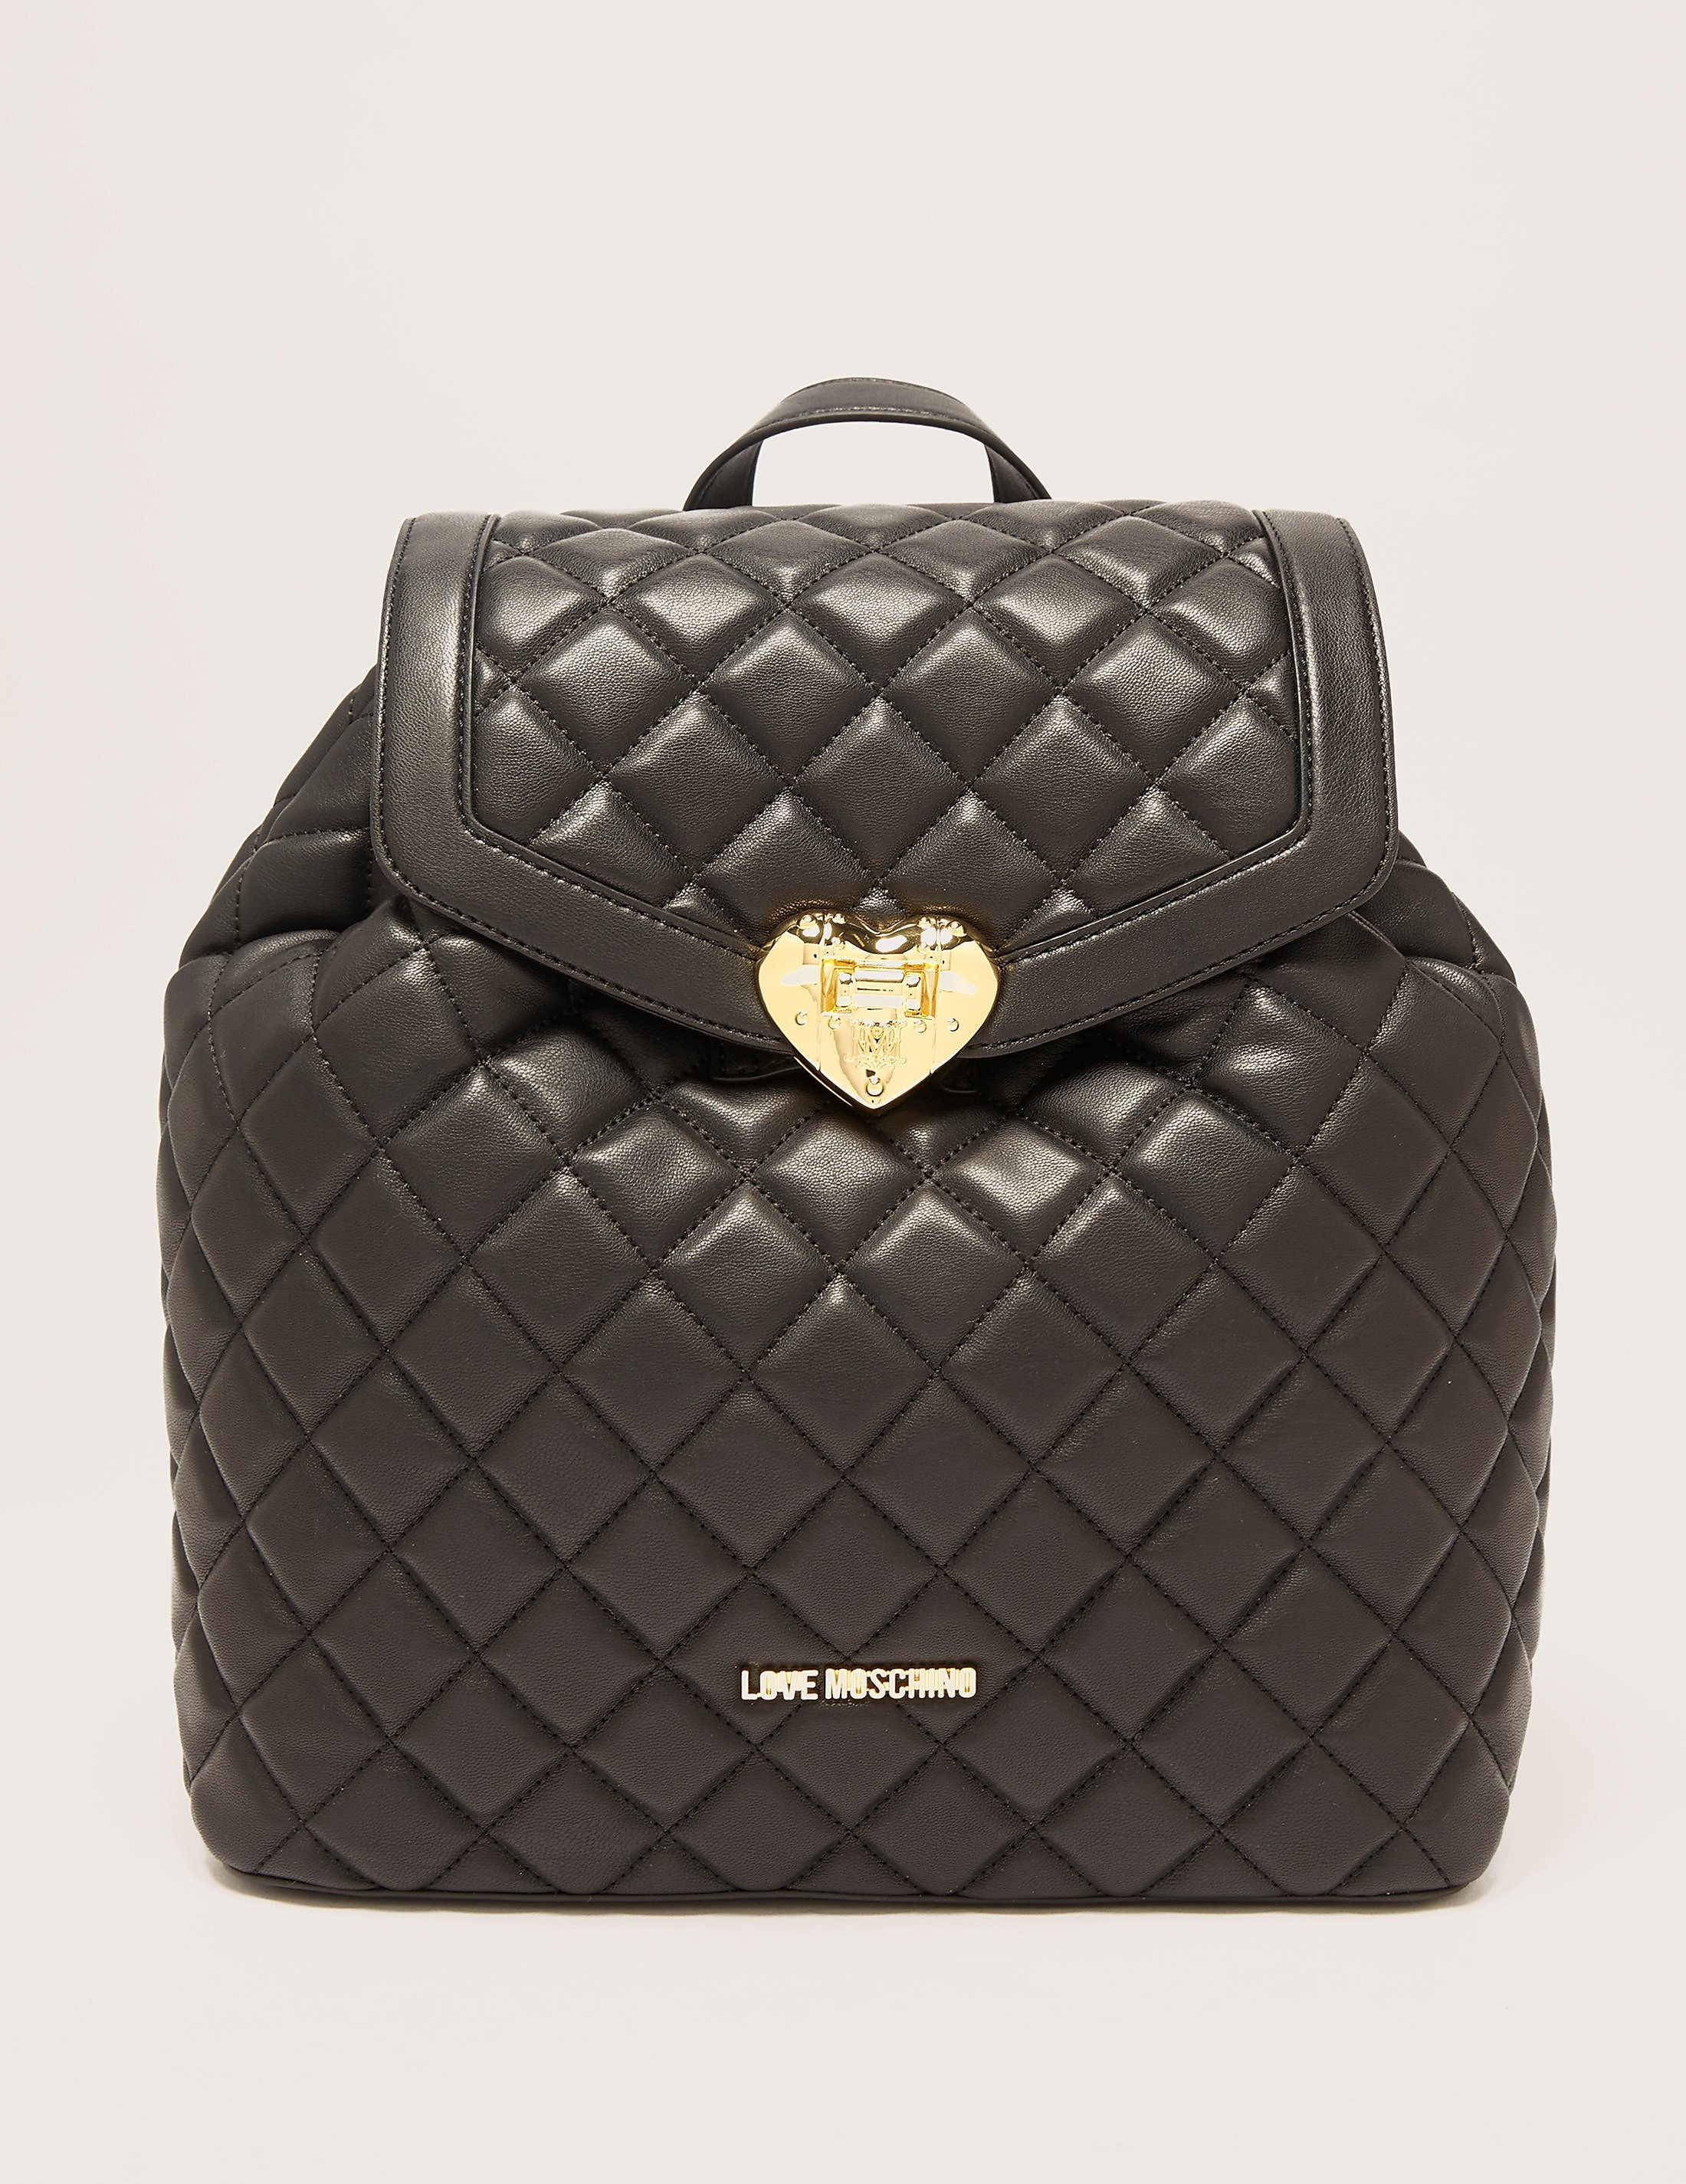 Love Moschino Quilt Backpack